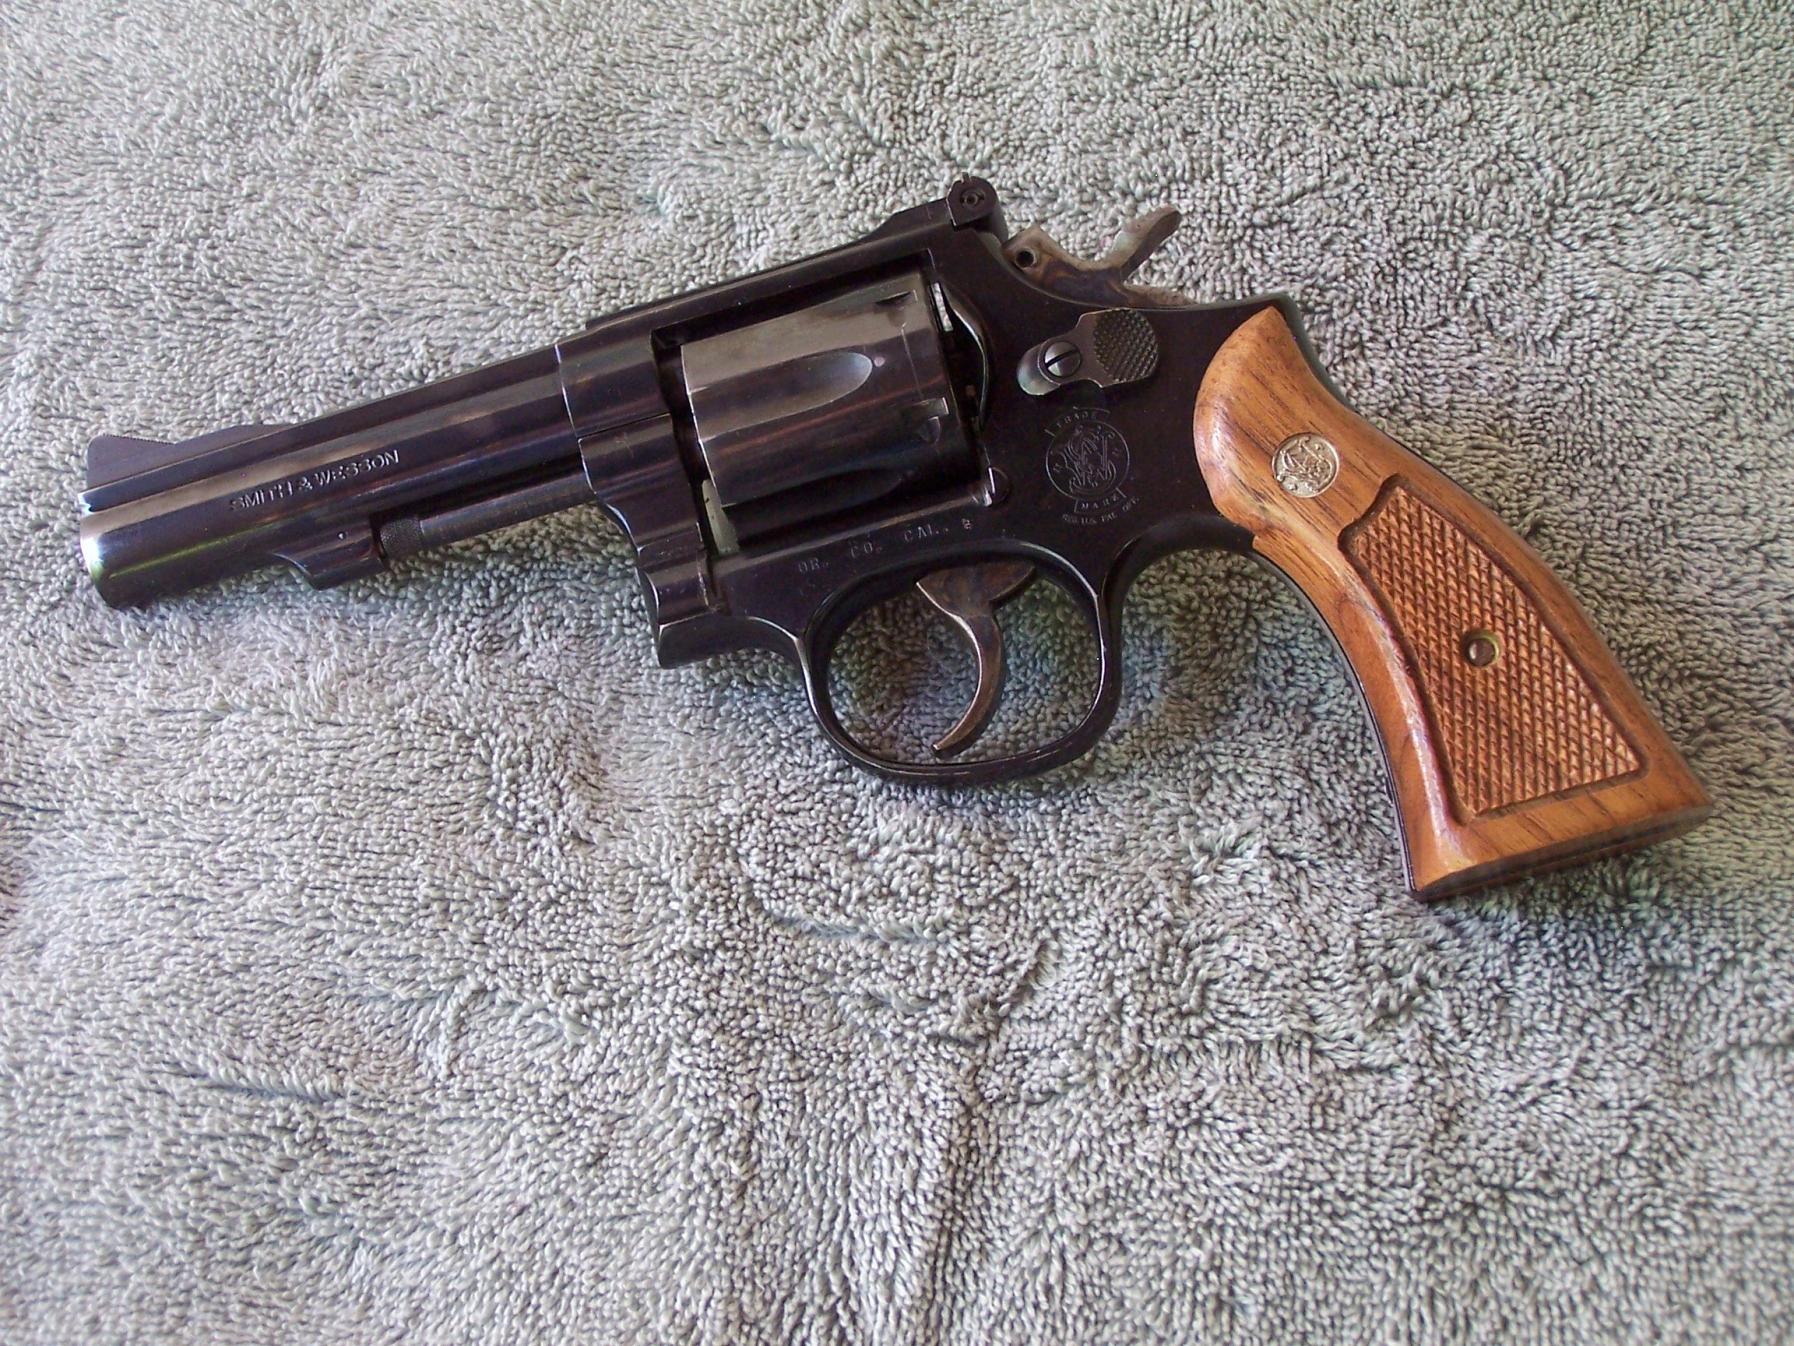 Just For Fun - Old Police Revolvers Thread-auh8483.jpg